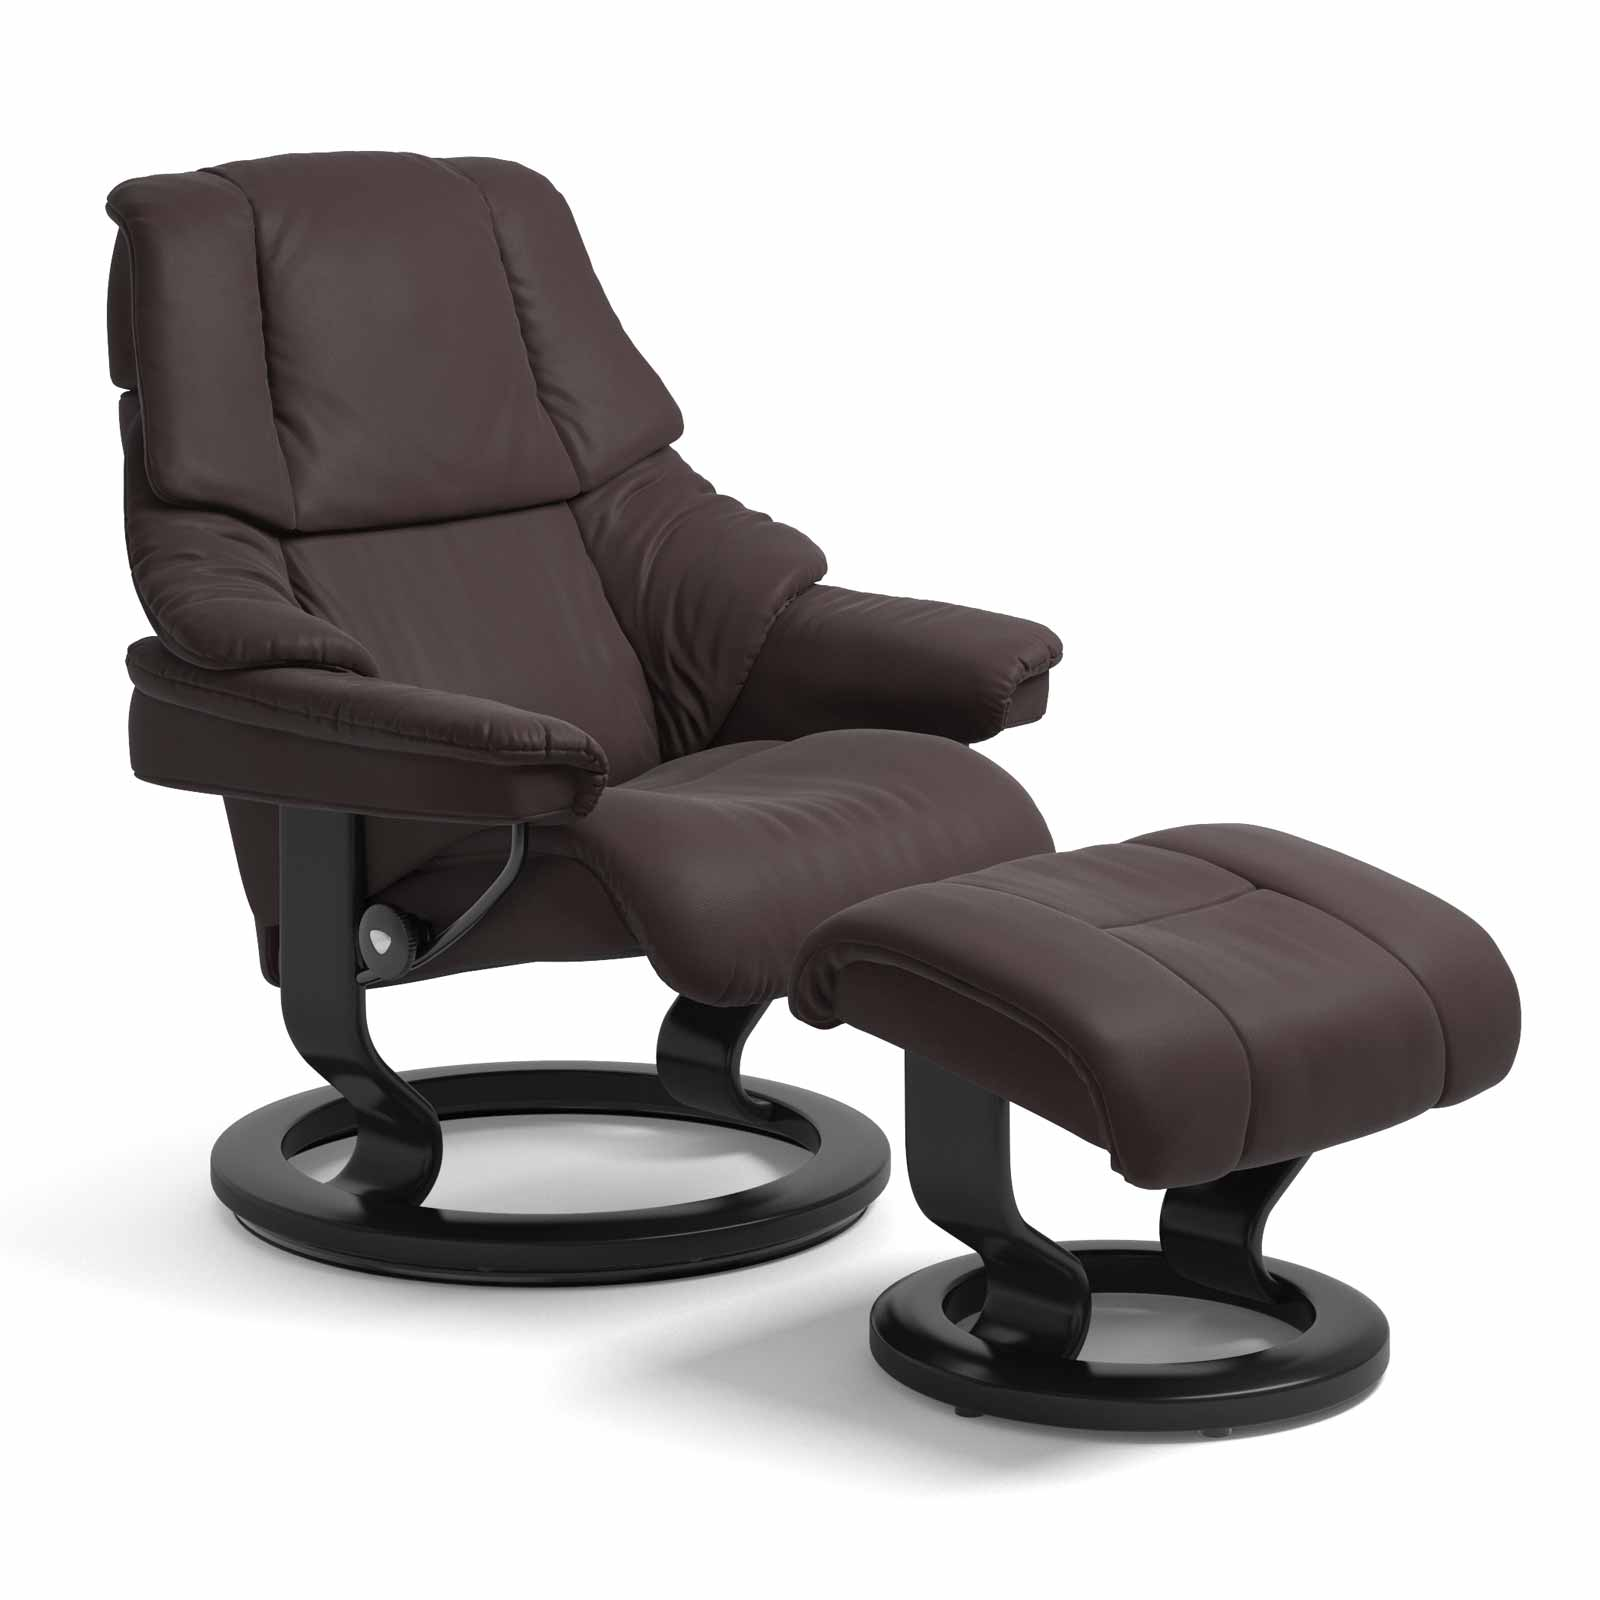 Stressless Sessel Mit Hocker Stressless Sessel Reno Classic Leder Paloma Chocolate Mit Hocker